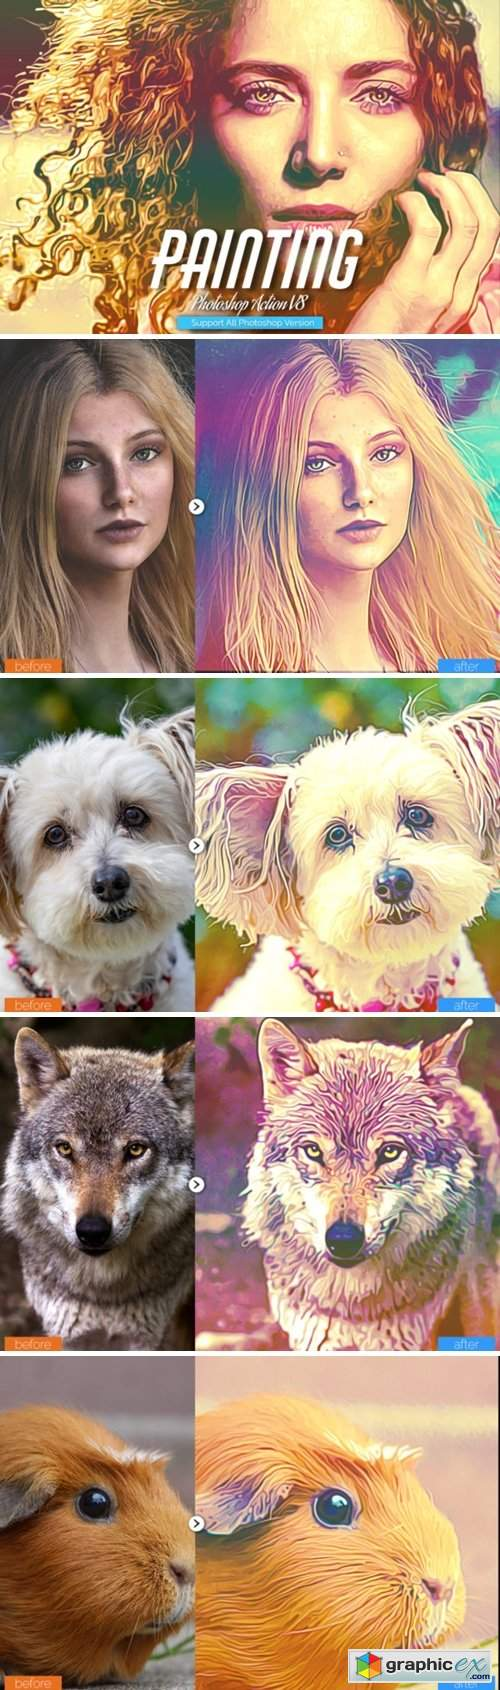 Painting Photoshop Action V8